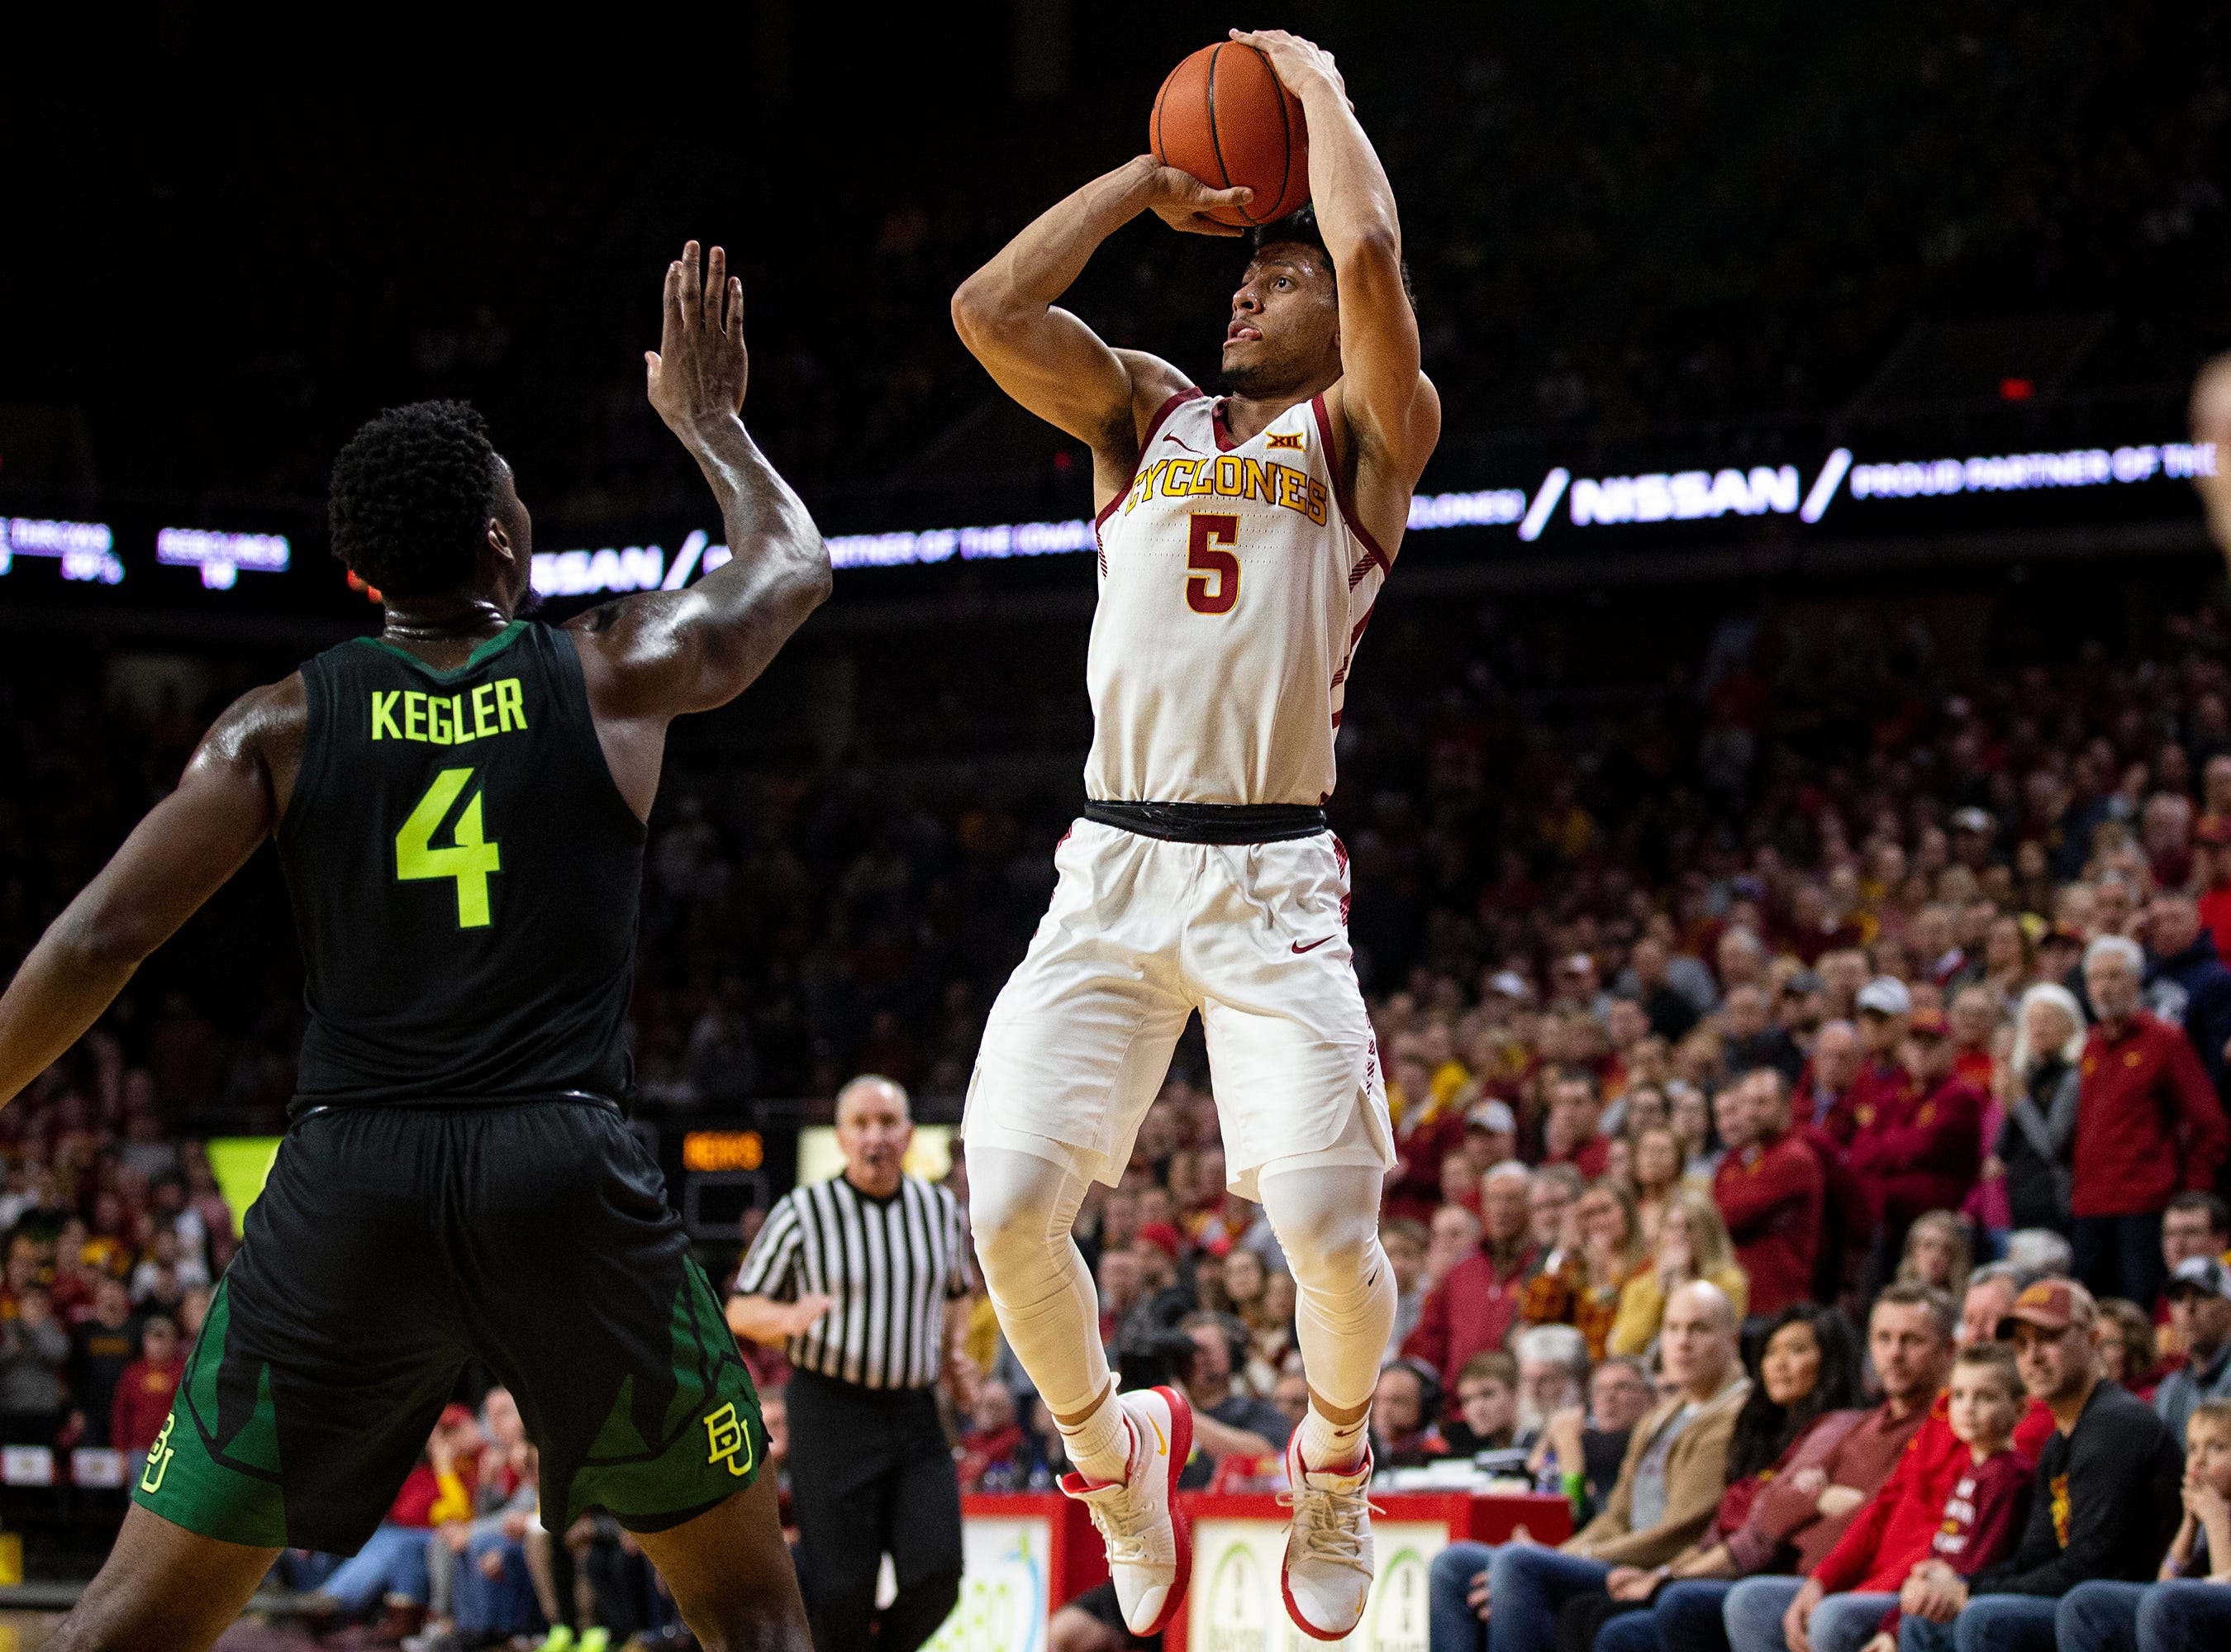 Iowa State's Lindell Wigginton shoots a three pointer during the Iowa State men's basketball game against Baylor on Tuesday, Feb. 19, 2019, in Hilton Coliseum.